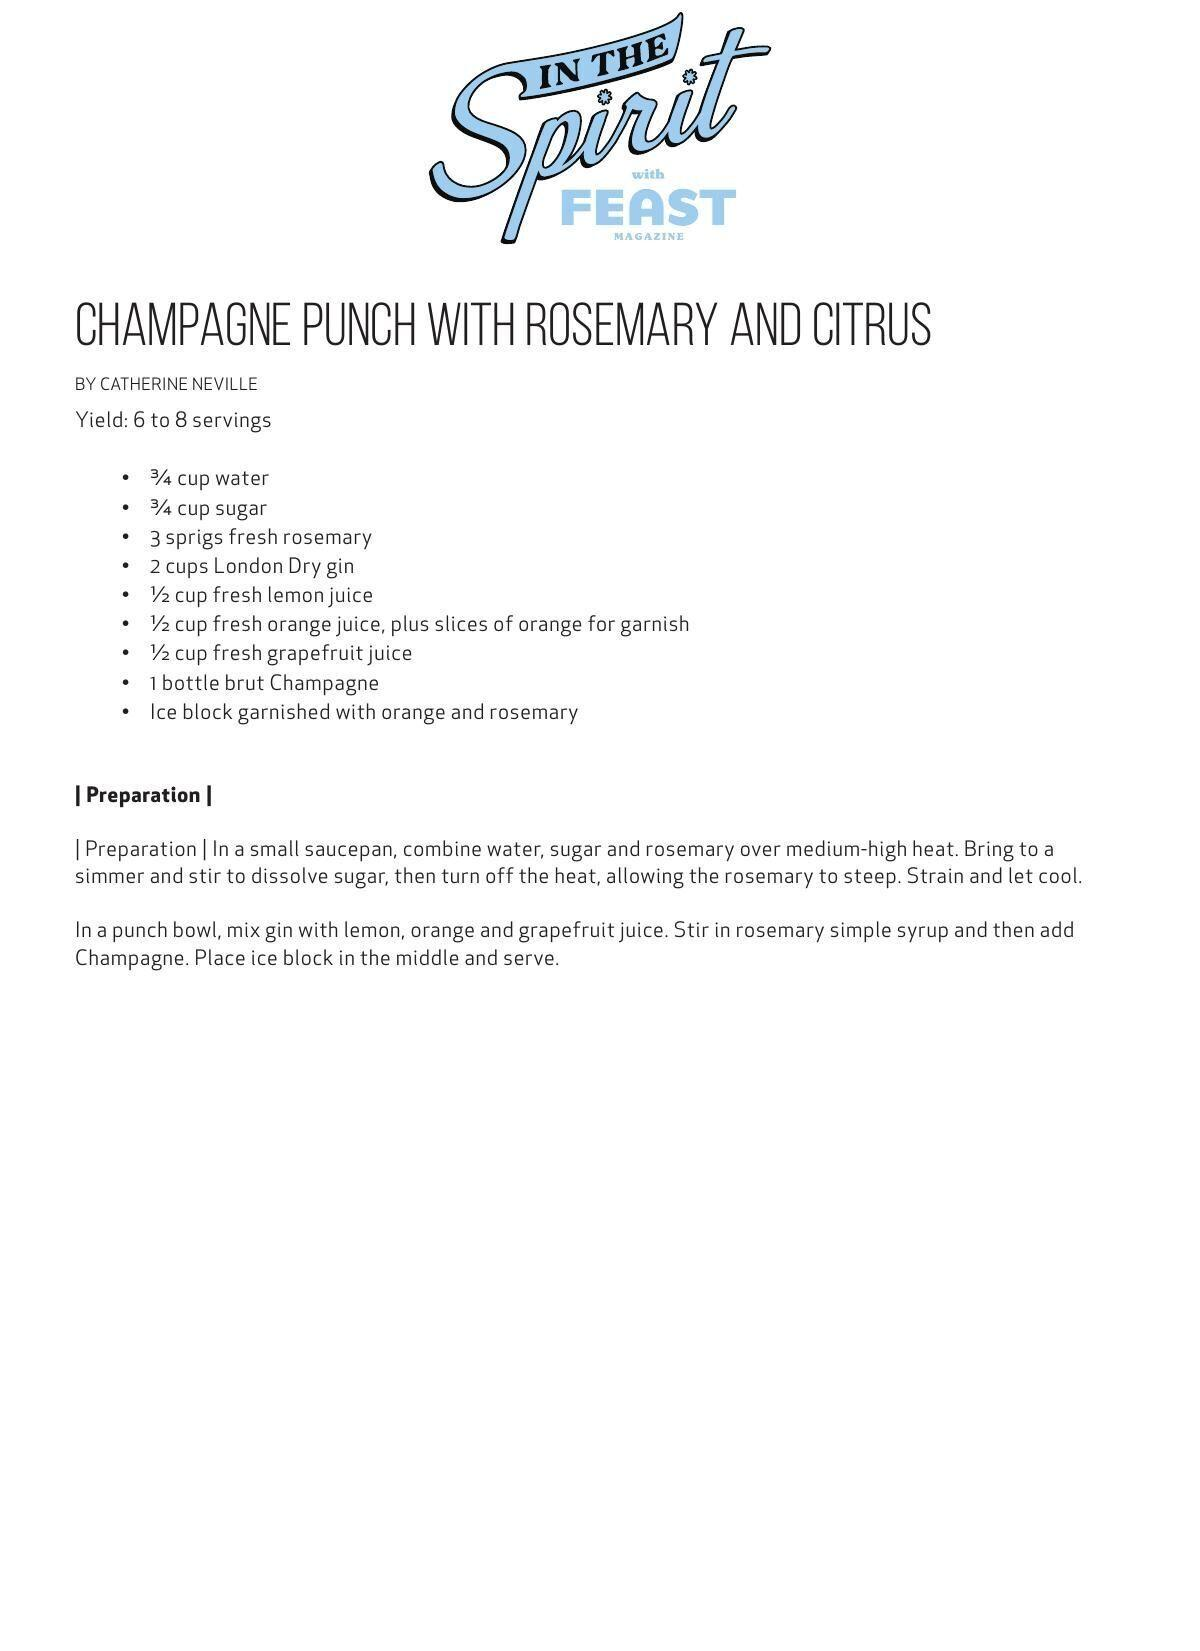 Download the champagne punch with rosemary and Citrus recipe here.